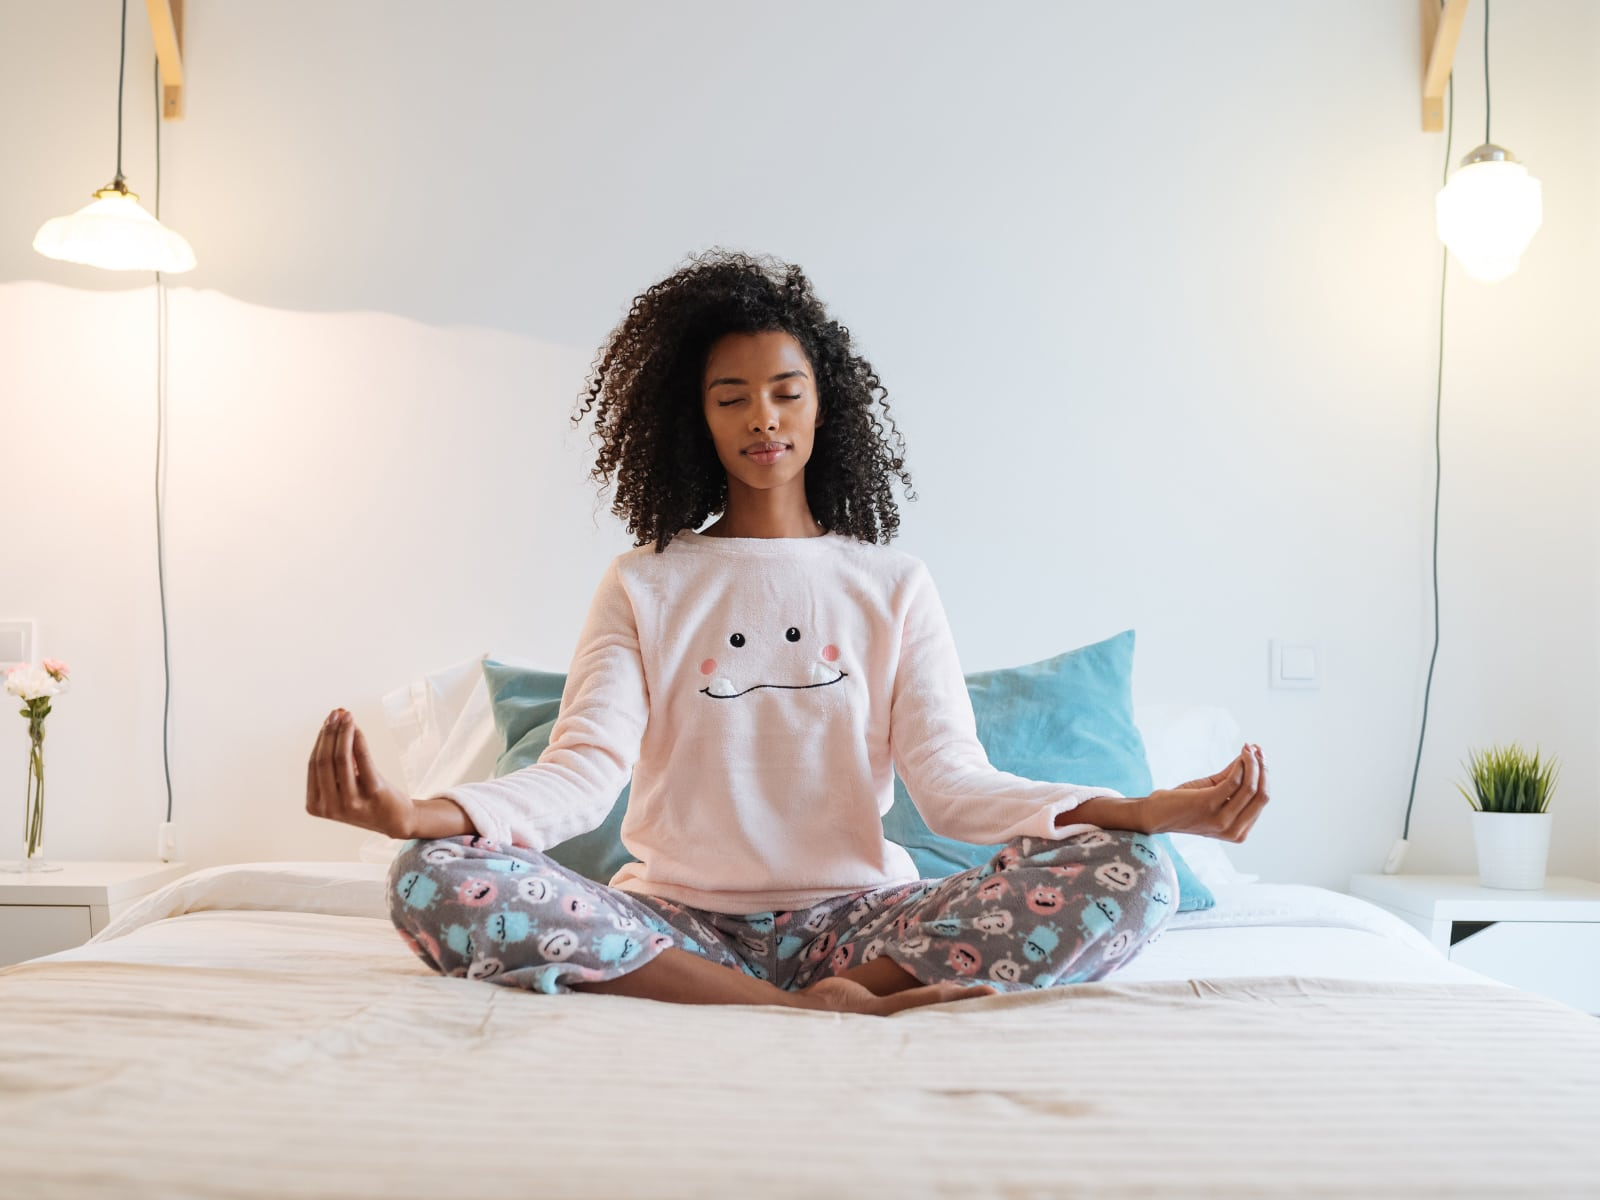 Woman of Color Meditating on a Bed | Metanoia Wellness